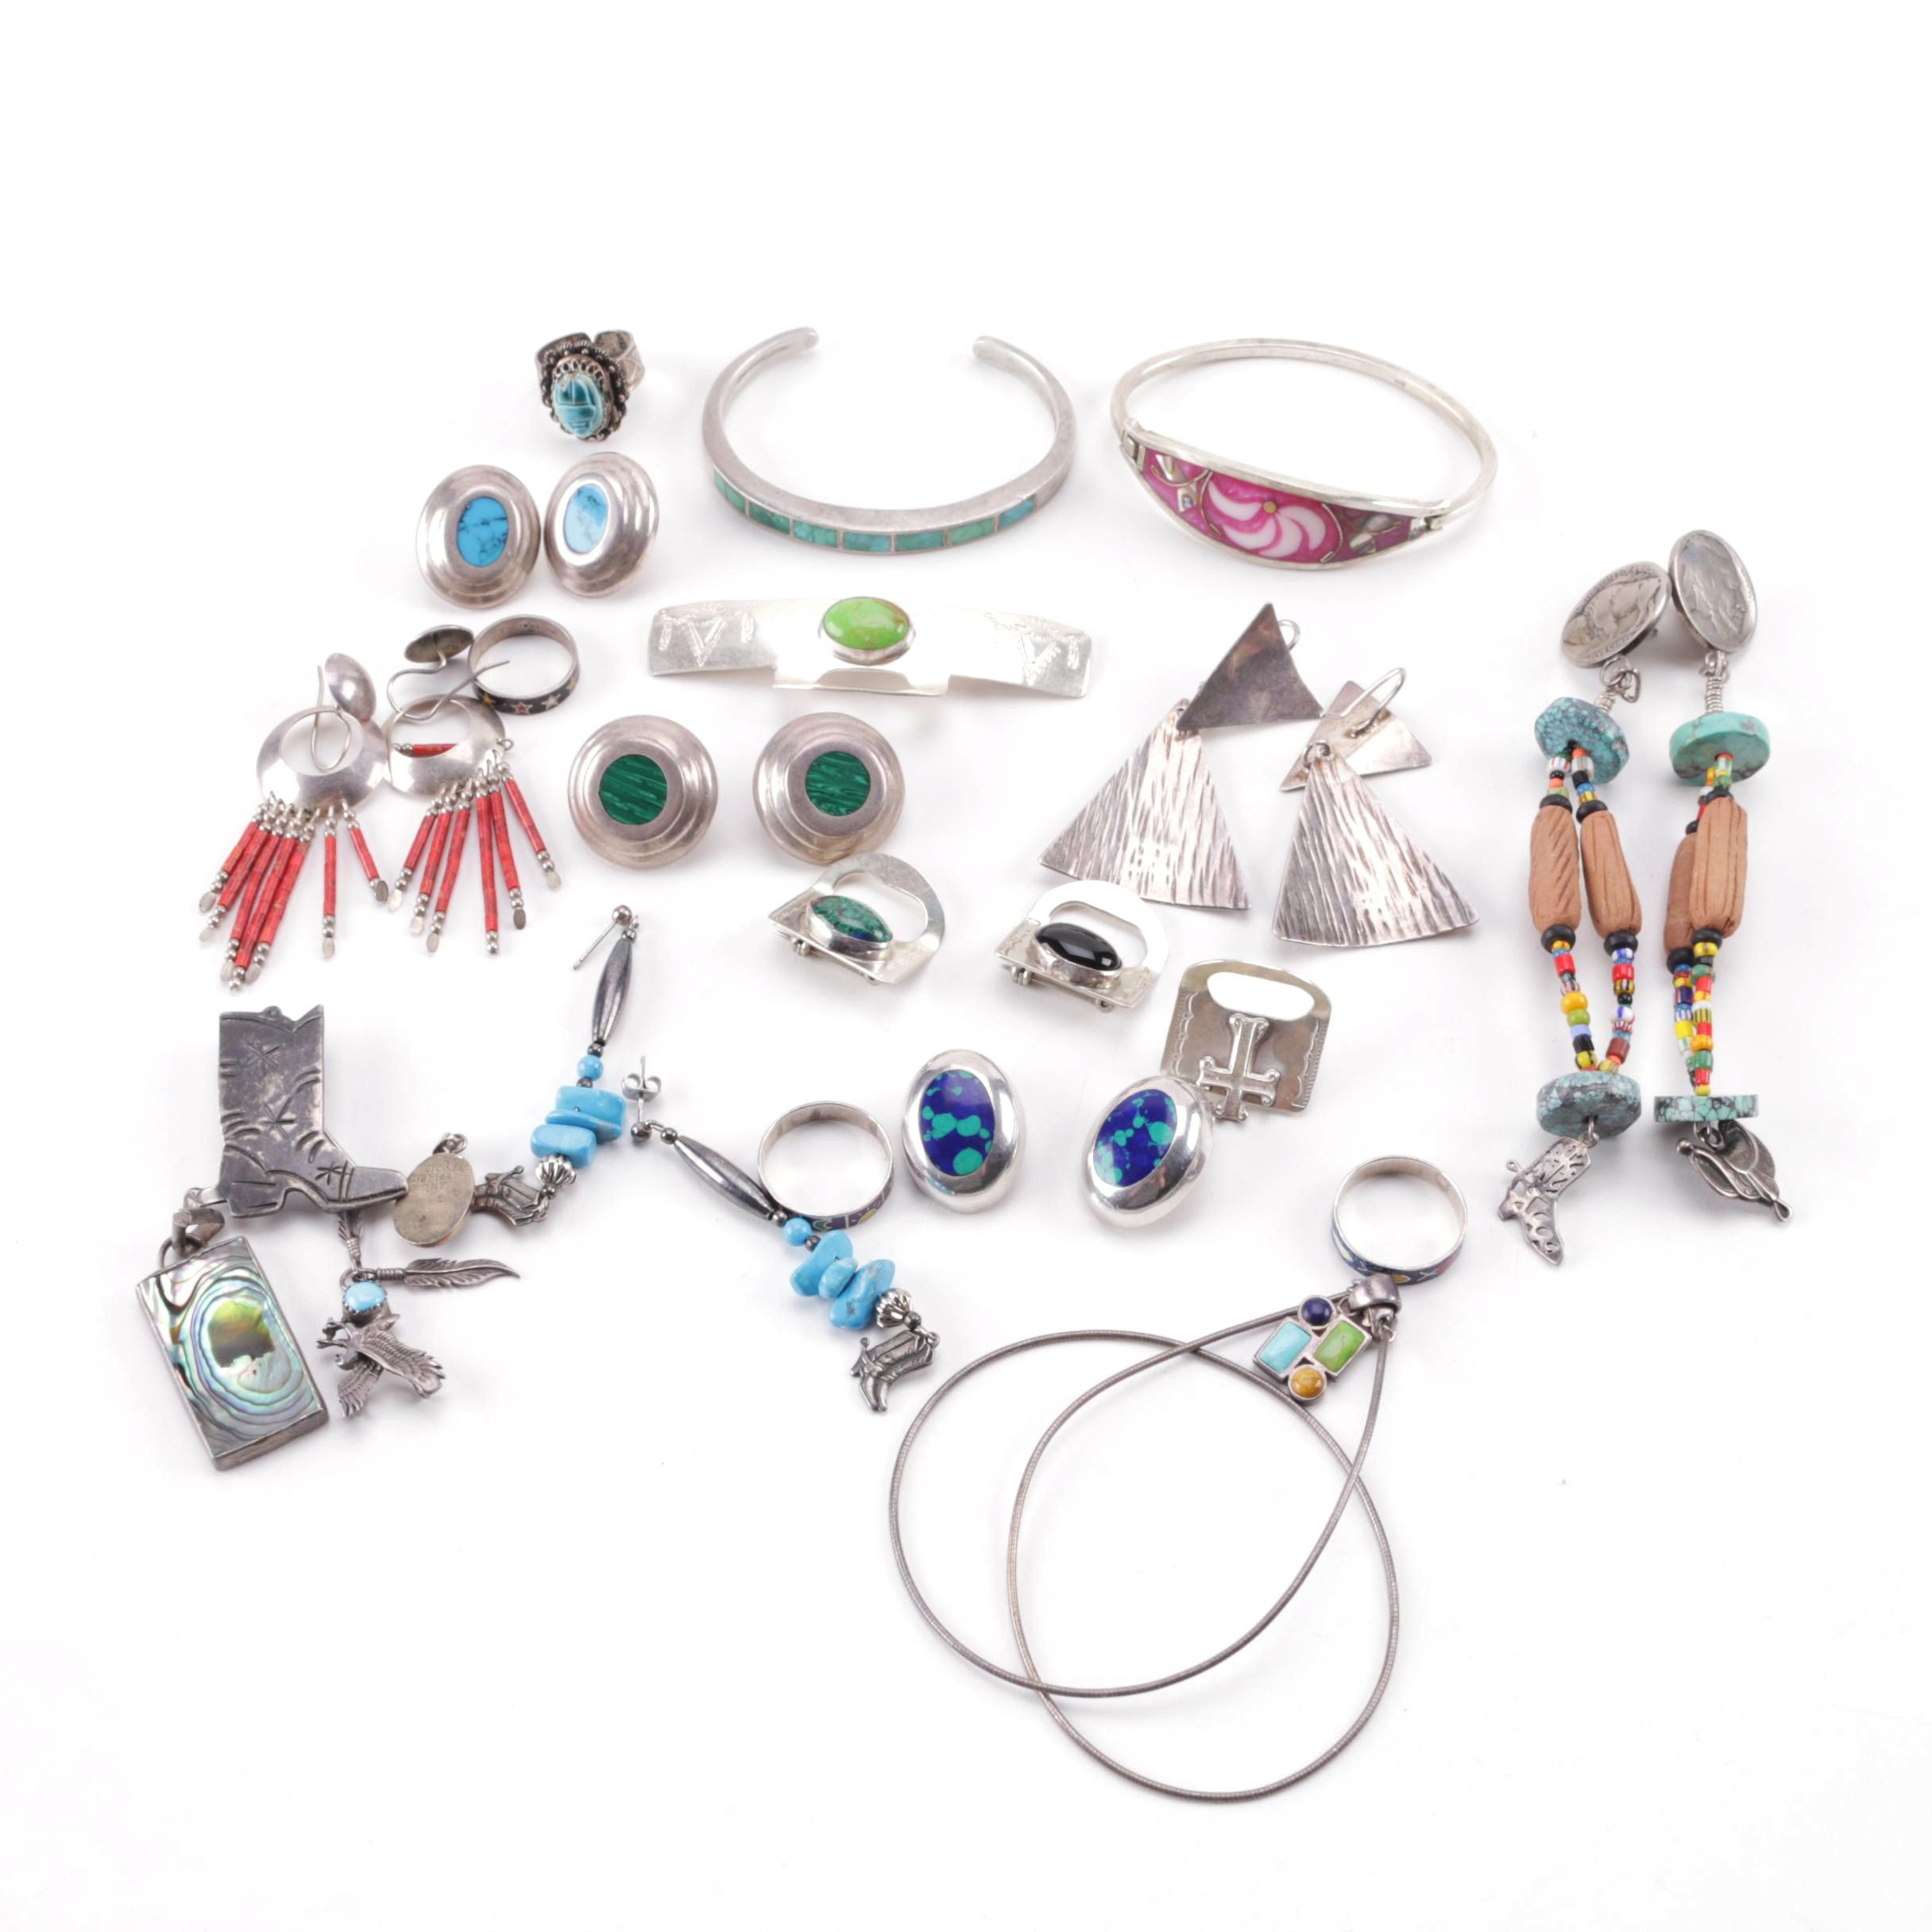 Southwestern Style Sterling and Silver Tone Jewelry With Gemstones Featuring Navajo Ben J. Chavez